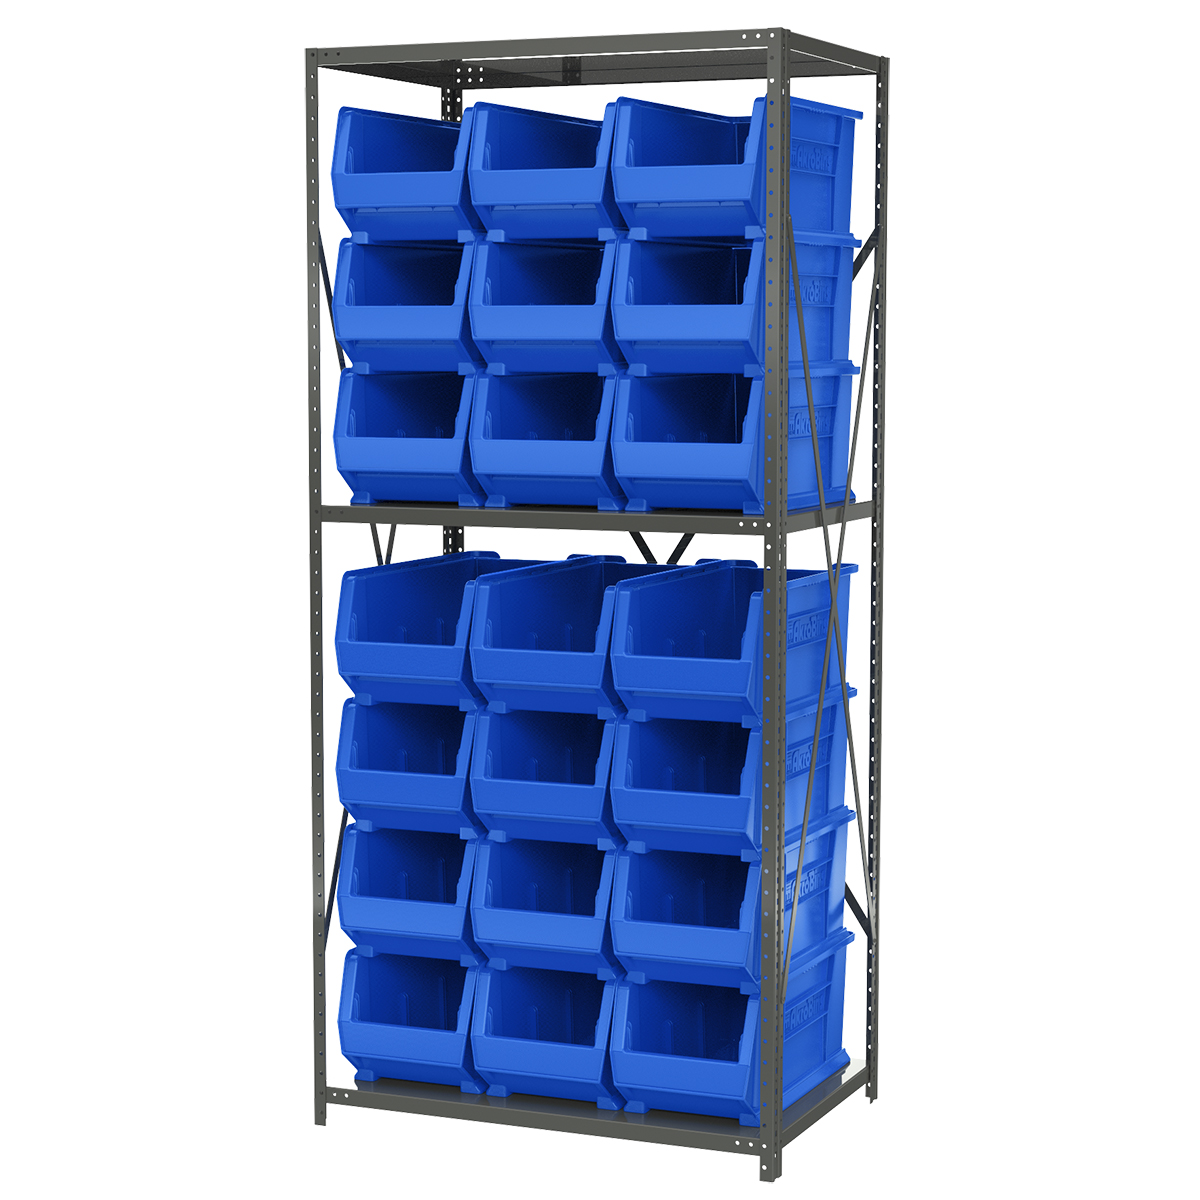 Steel Shelving Kit, 24x36x79, 24 Bins, Gray/Blue.  This item sold in carton quantities of 1.